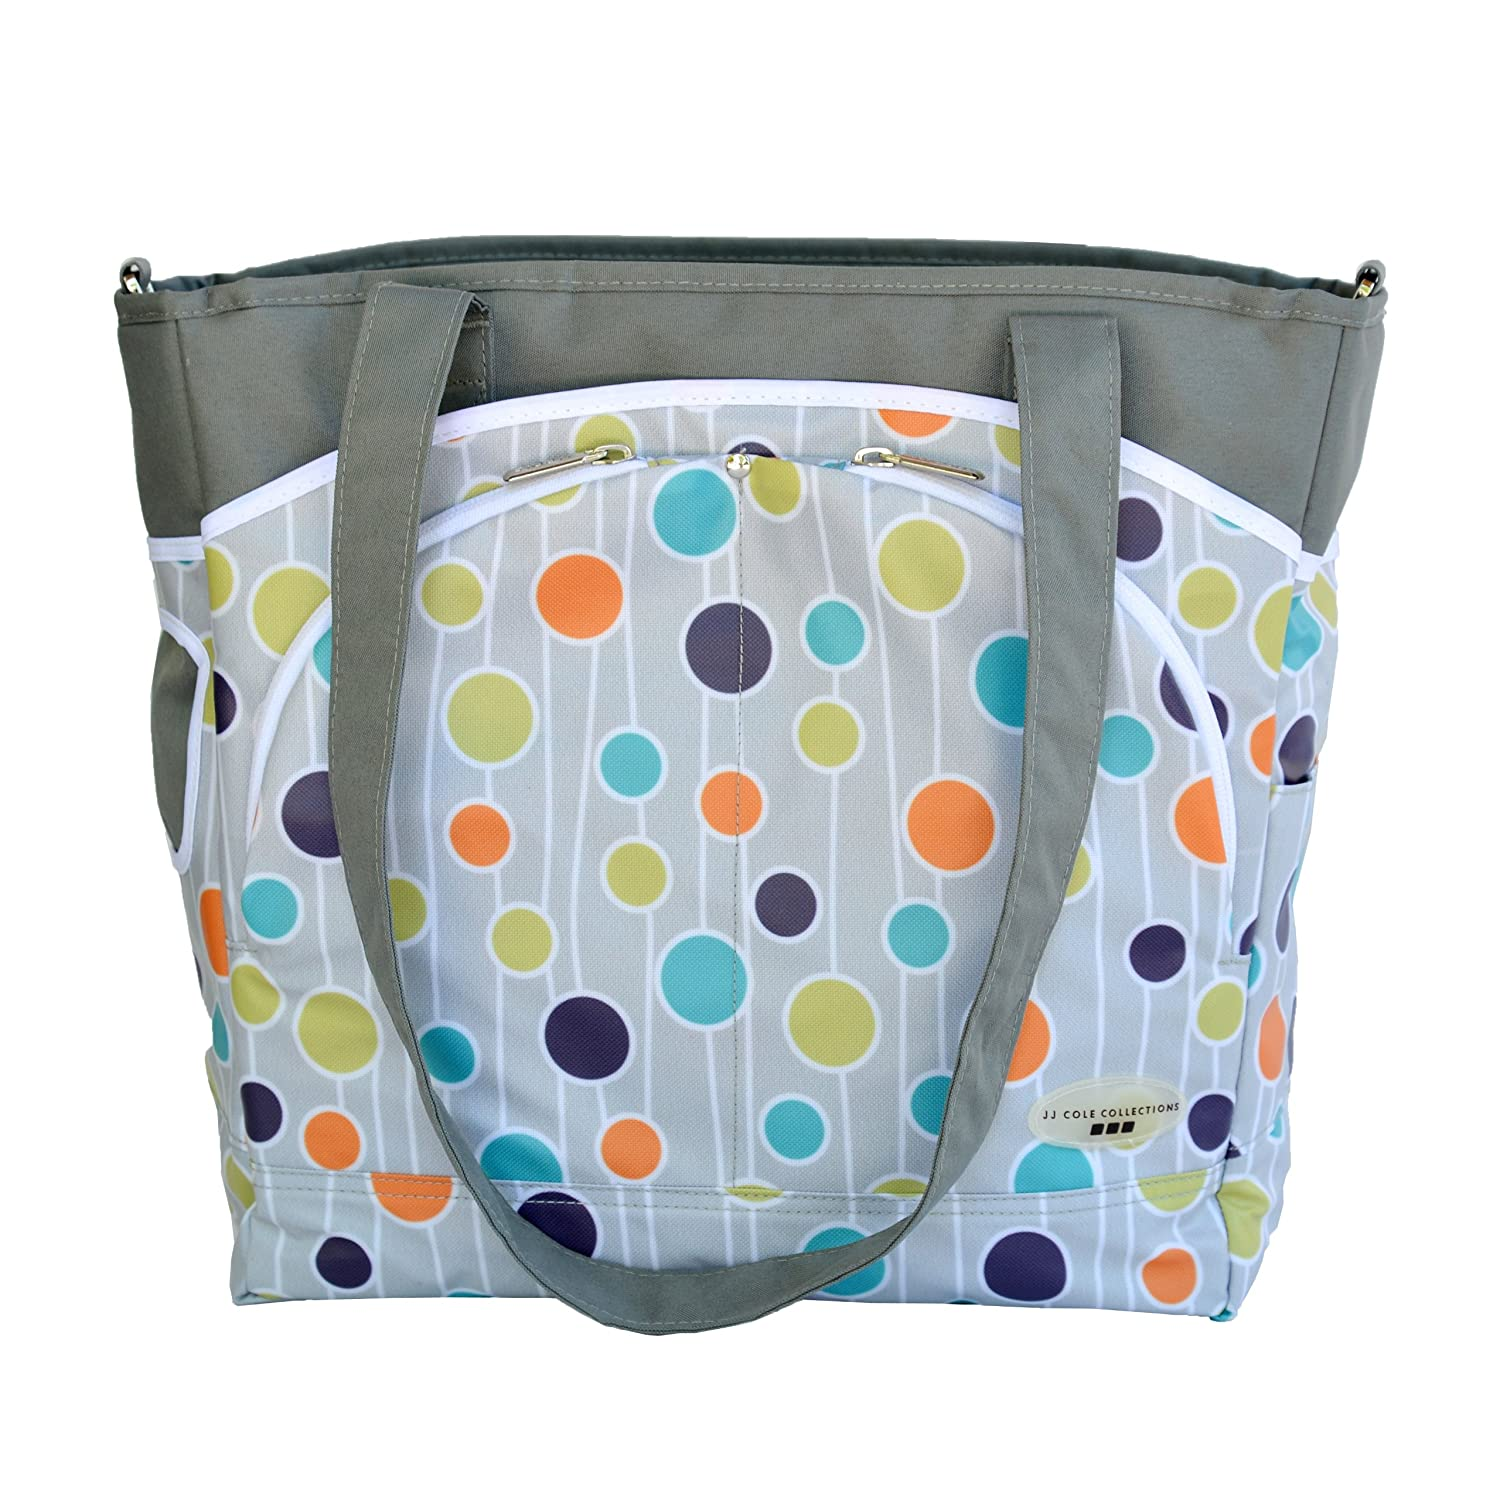 JJ Cole Mode - Bolso de maternidad multicolor Tomy Spain JMMPP